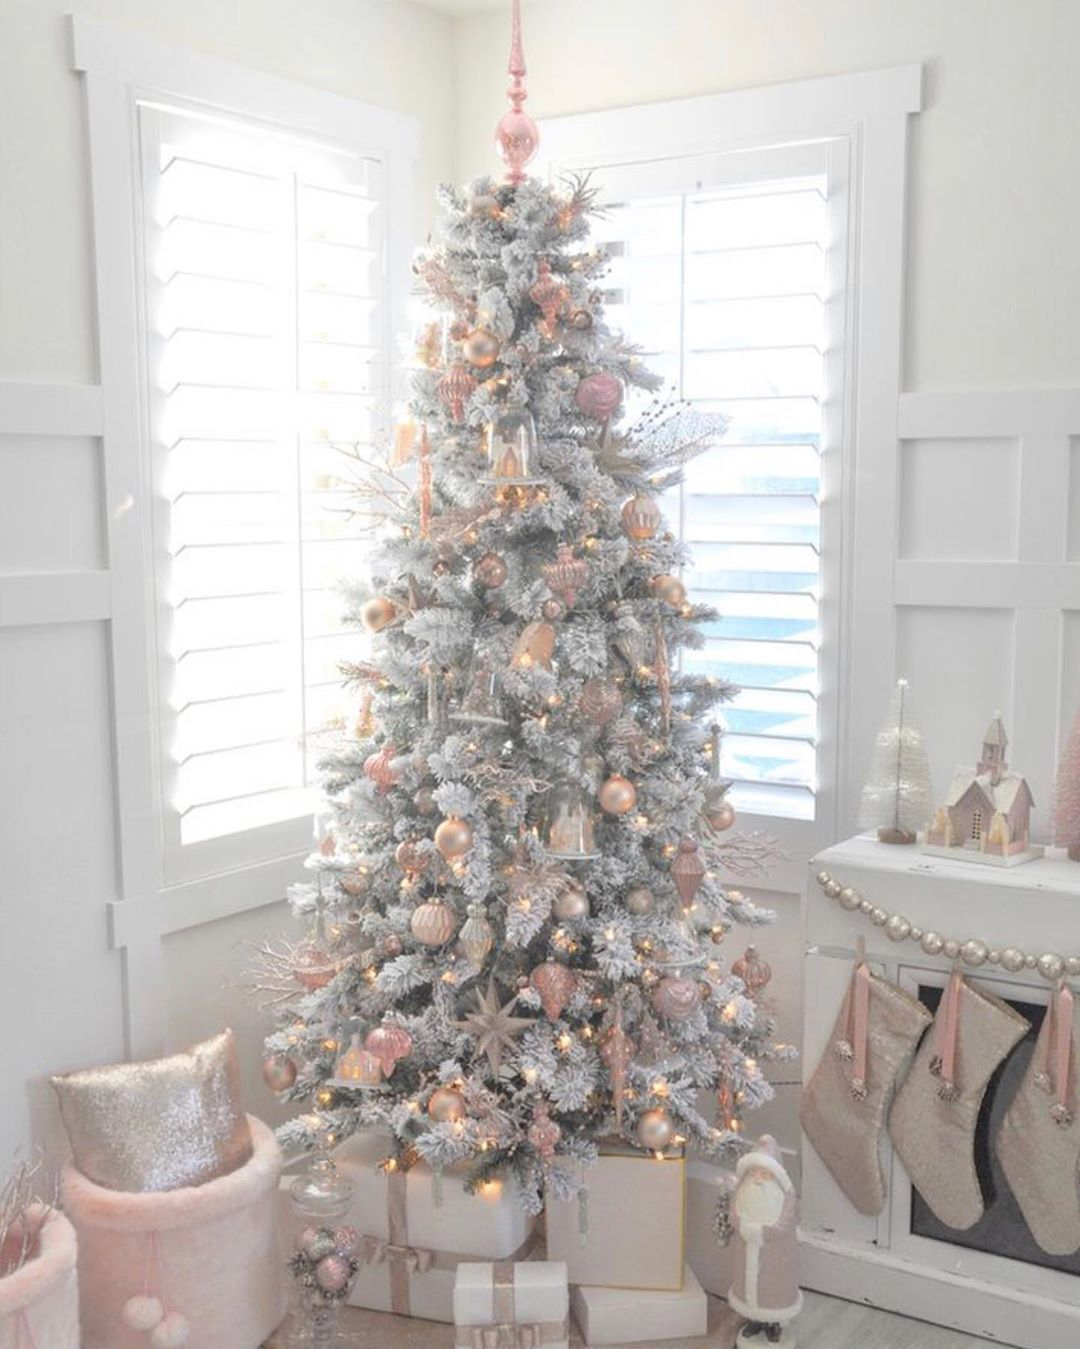 "ChristmasLove365 on Instagram: ""Lovely! @poutedmagazine  #christmasdecor #xmasdecor #christmastree #xmastree #christmashome #christmashomedecor #pastelchristmastree…"""